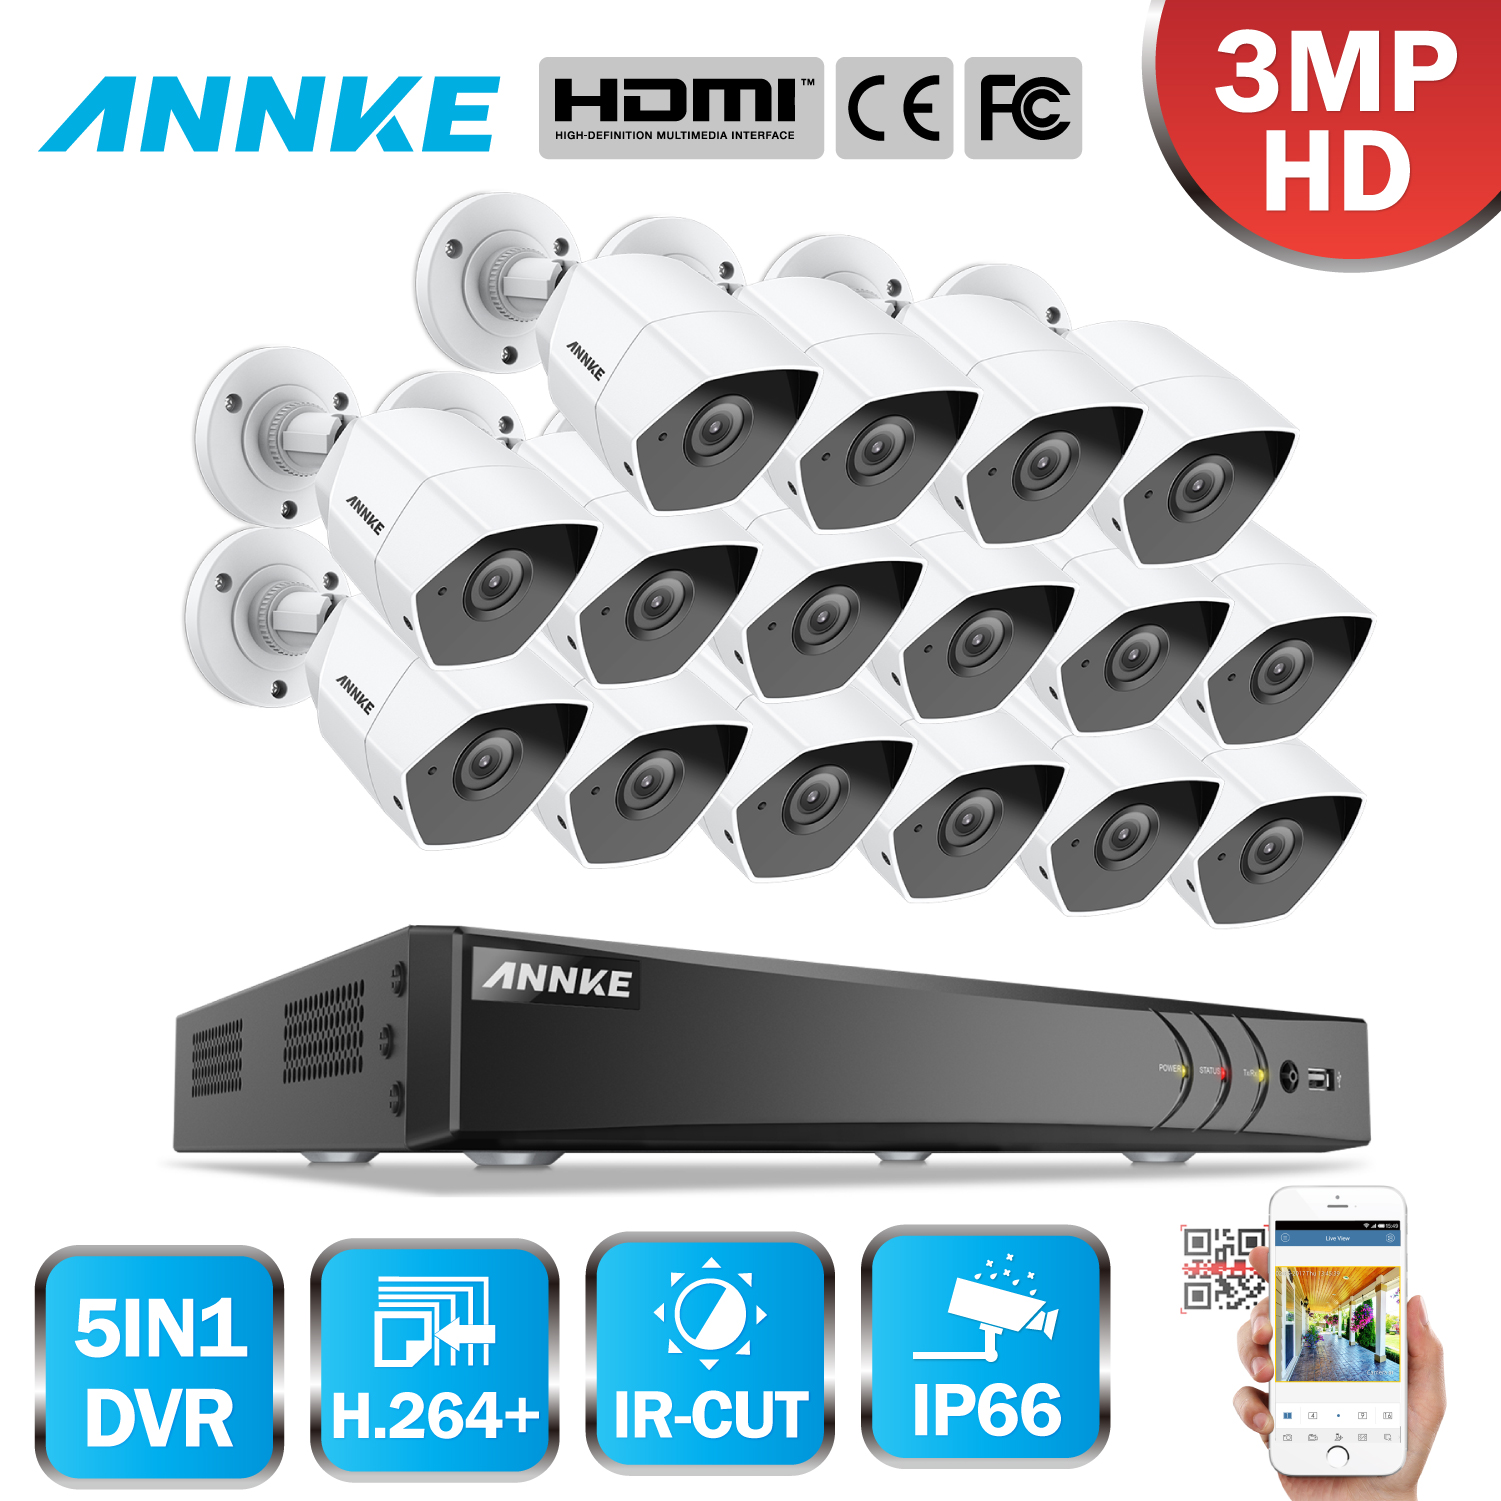 ANNKE Full HD 16CH 5in1 3MP CCTV System 16pcs 3MP Security Bullet Waterproof Camera Smart IR Outdoor 3MP Video Surveillance Kit dahua 3mp ir waterproof